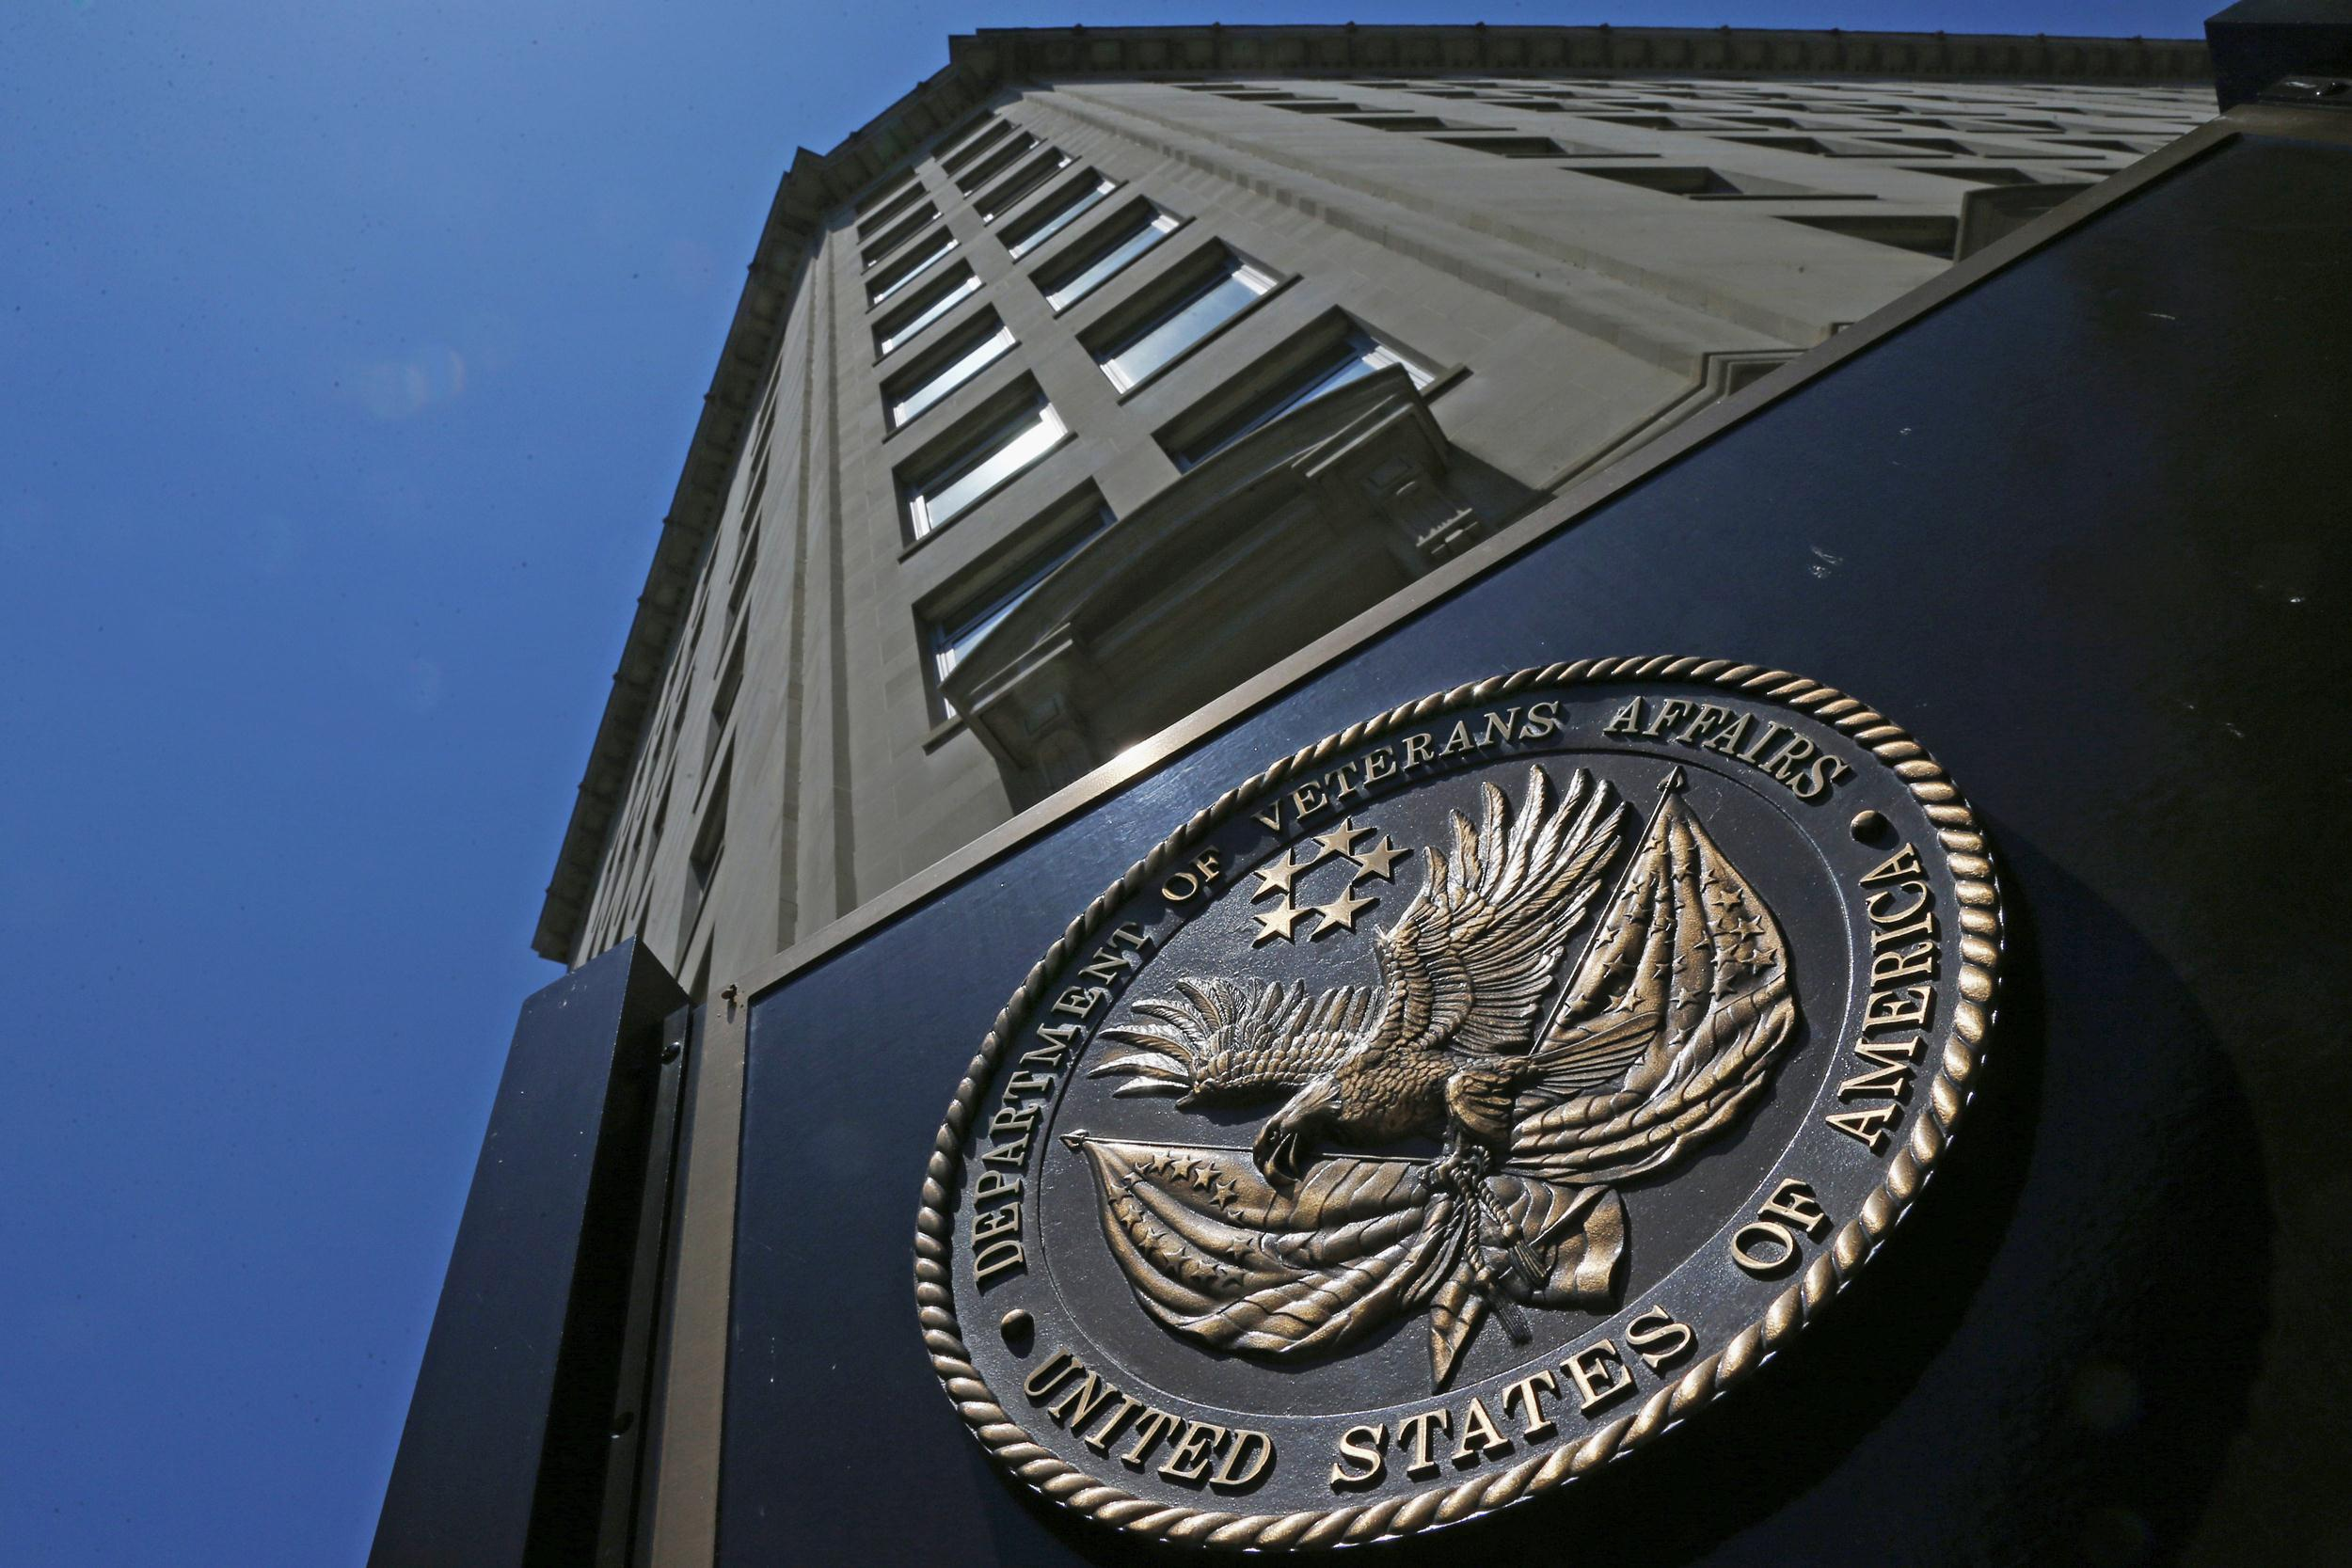 Image: The seal of the Department of Veterans Affairs building in Washington